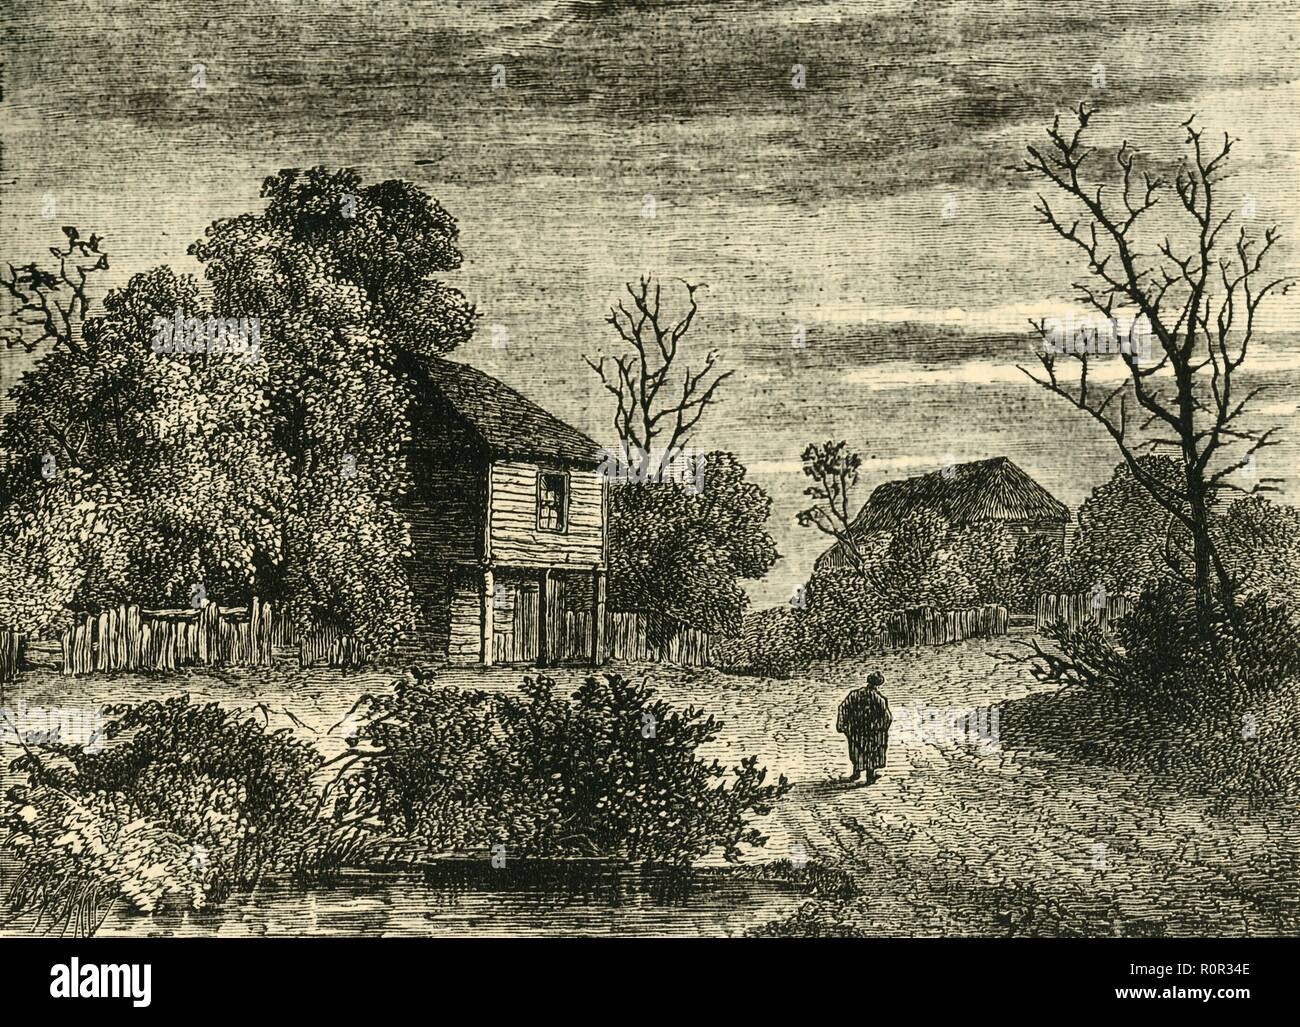 'Margaret Finch's Cottage, Norwood in 1808', (c1878). House in what was the village of Norwood, (now part of greater London), lived in by Margaret Finch, 'Queen of the Gipsies'. She apparently told fortunes, smoked a pipe, and lived till 108. From Old and New London: A Narrative of Its History, Its People, And Its Places. The Southern Suburbs, Volume VI, by Edward Walford. [Cassell, Petter, Galpin & Co., London, Paris & New York, c1878] - Stock Image